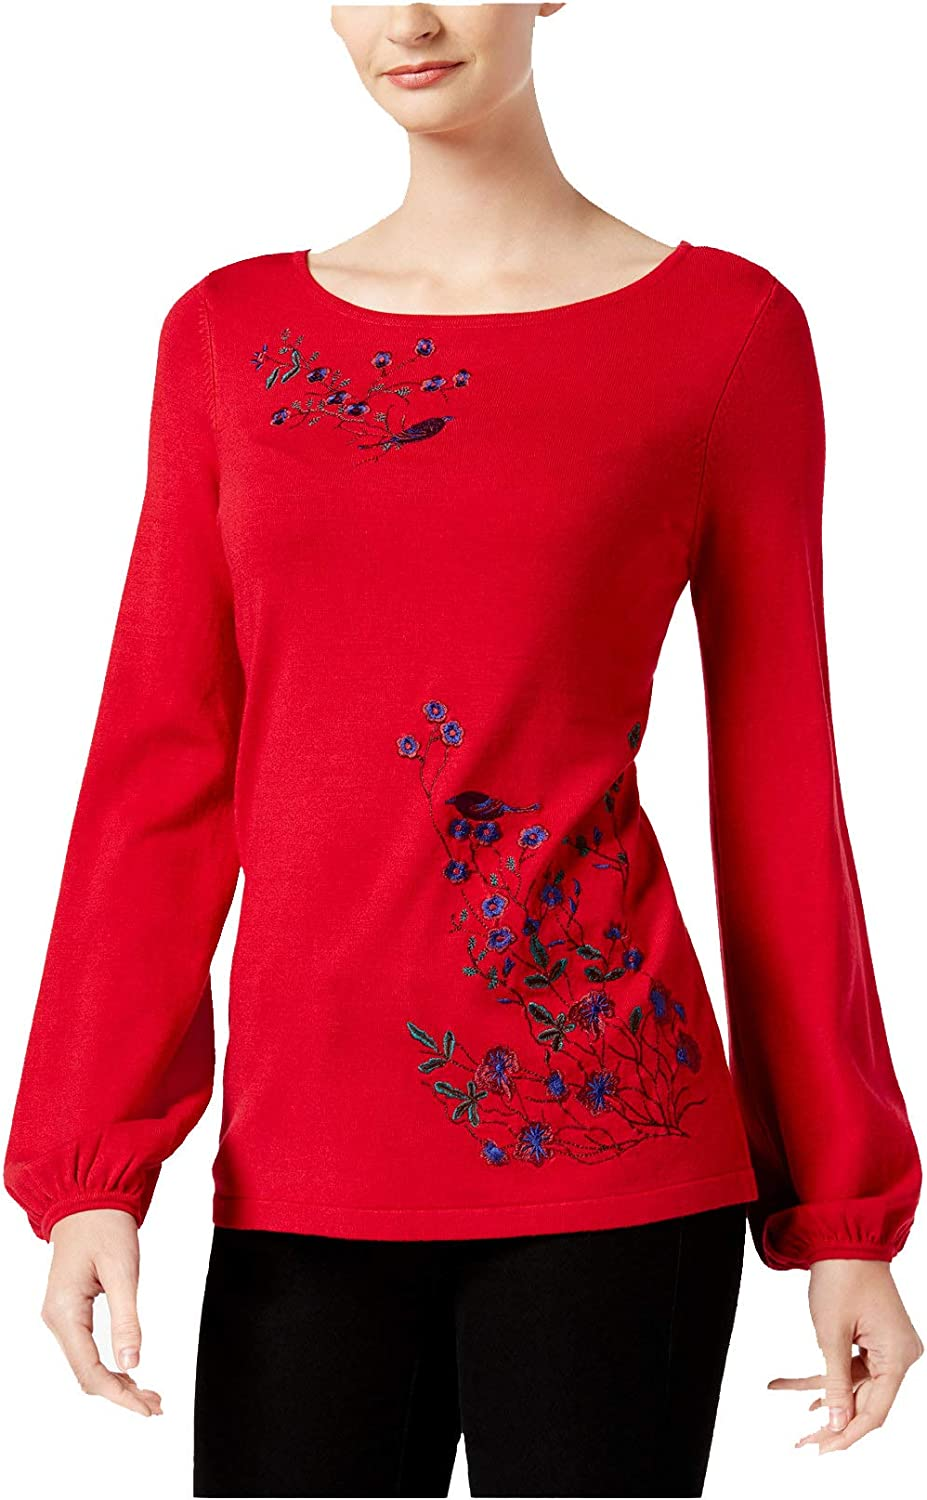 Charter Club Womens Embroidered Knit Blouse